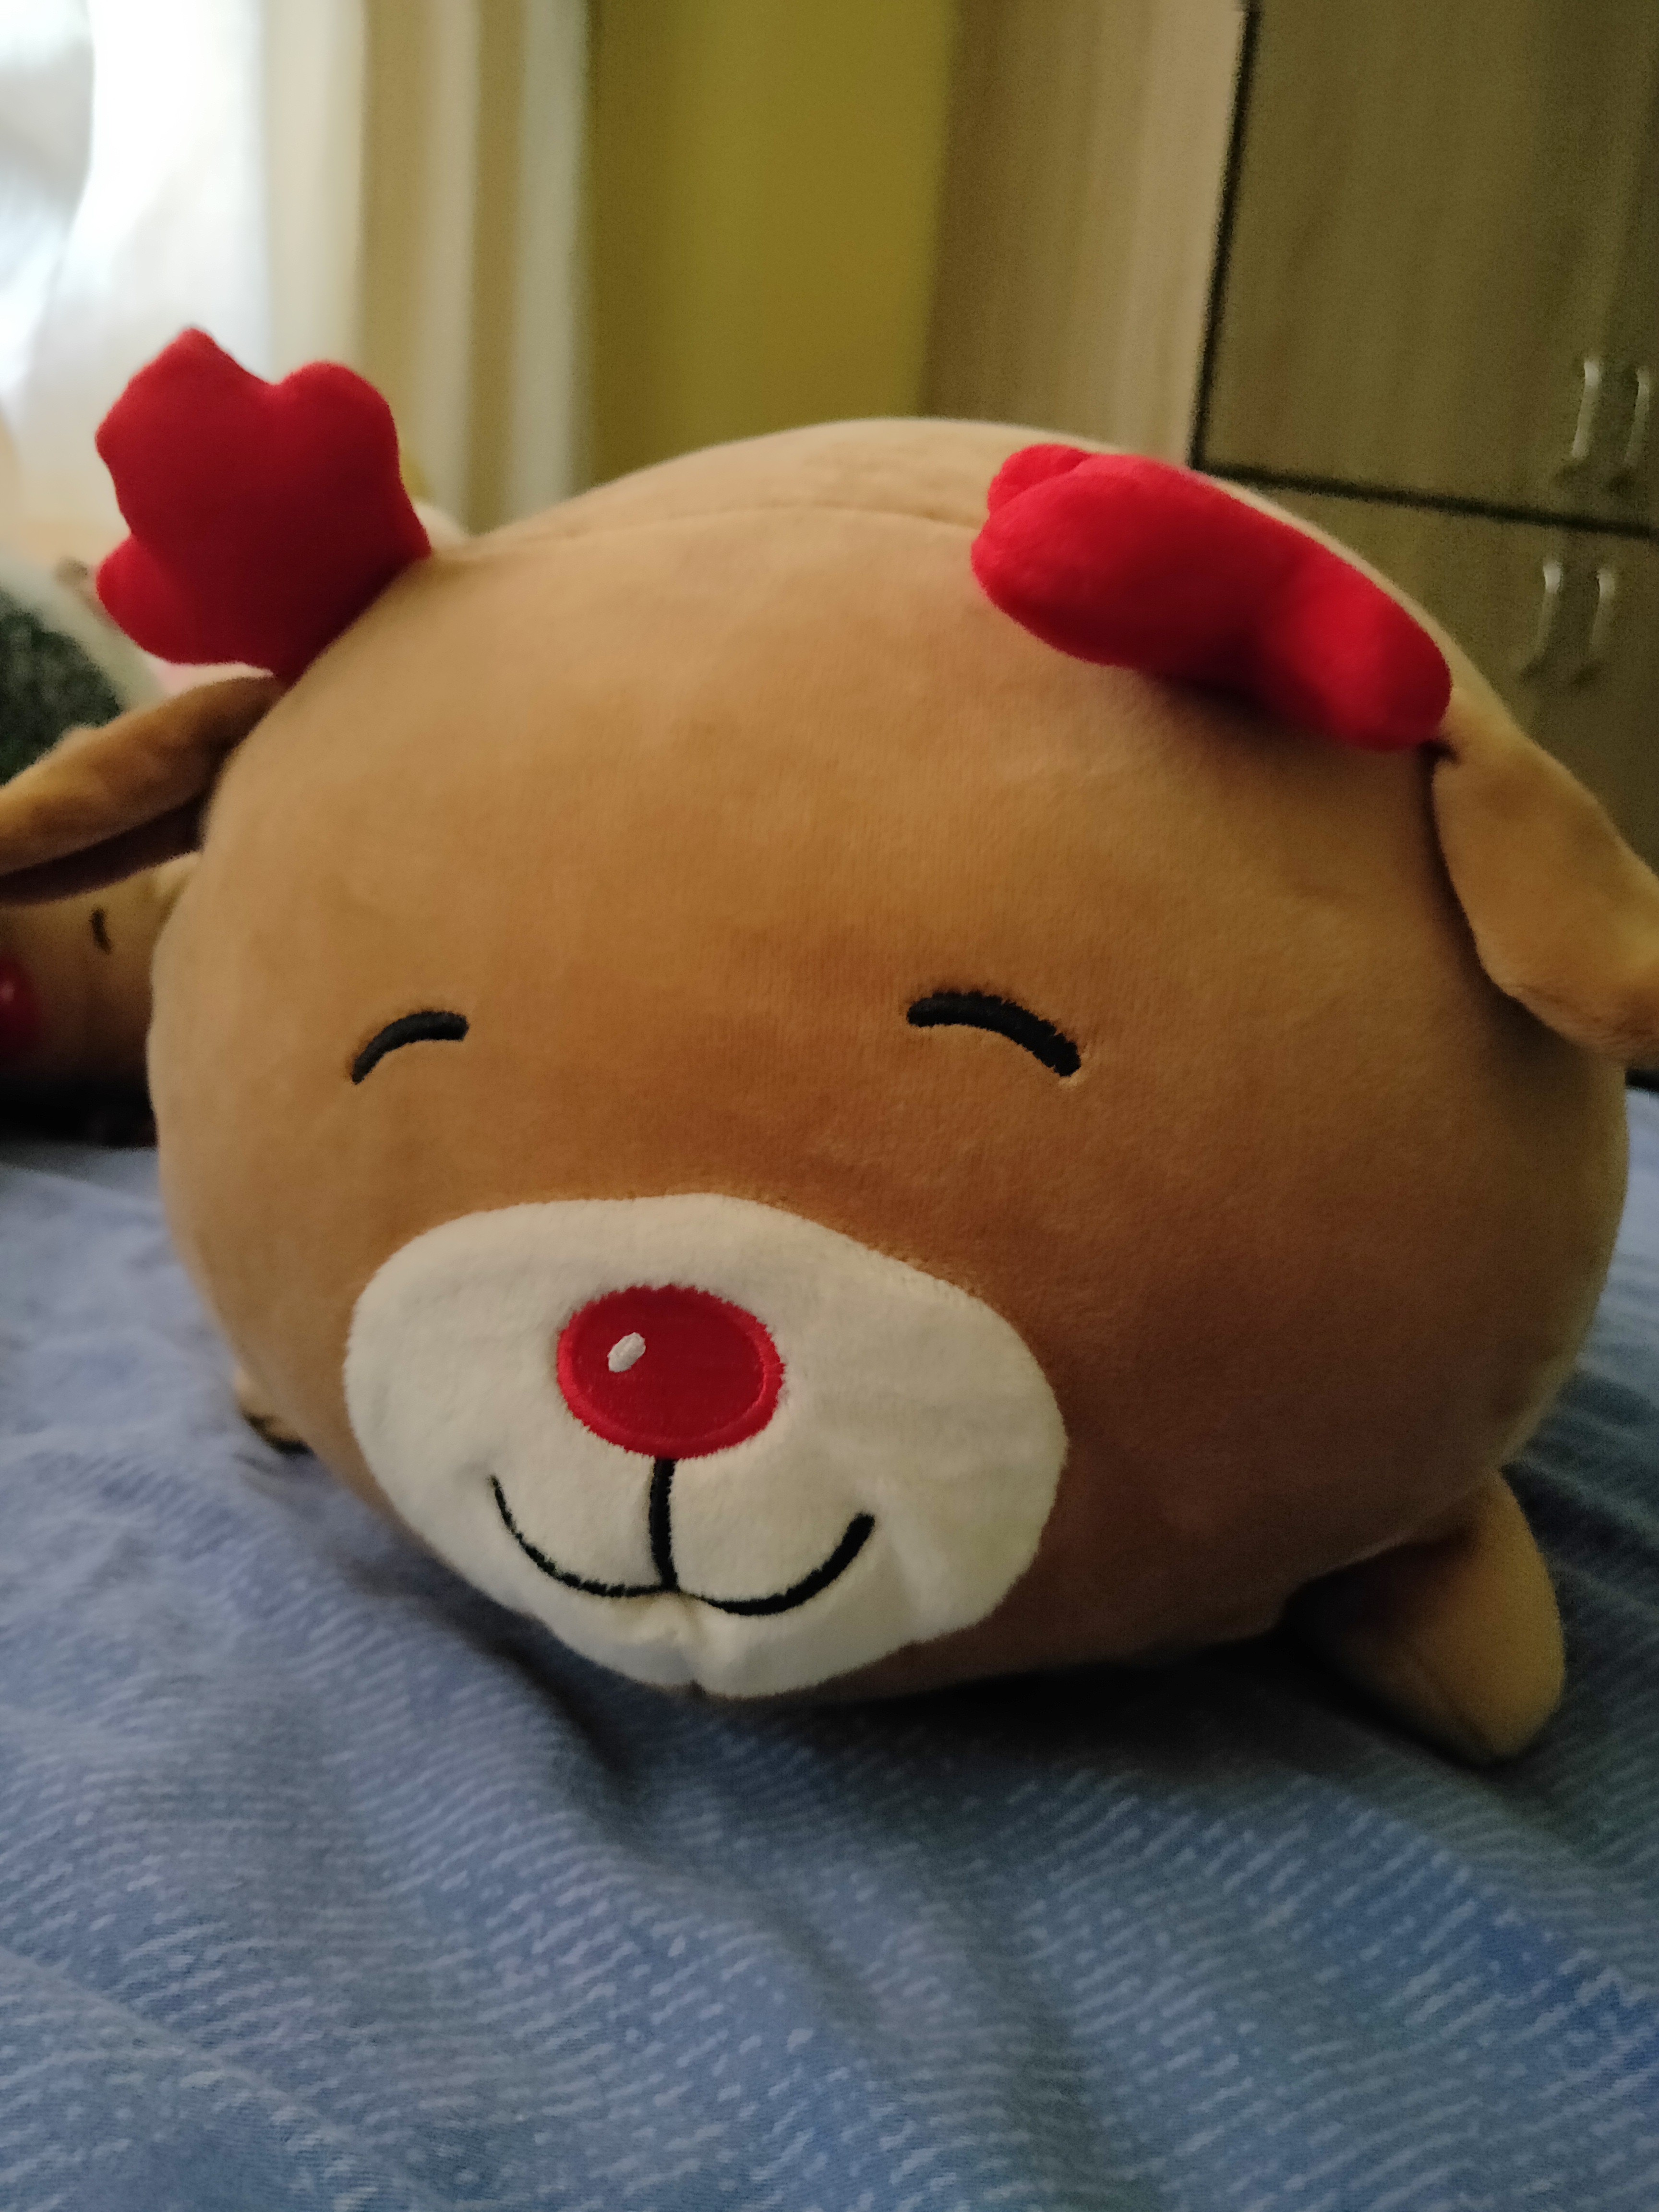 Rudolph the Red Nose Reindeer Plush Toy 1b640982c